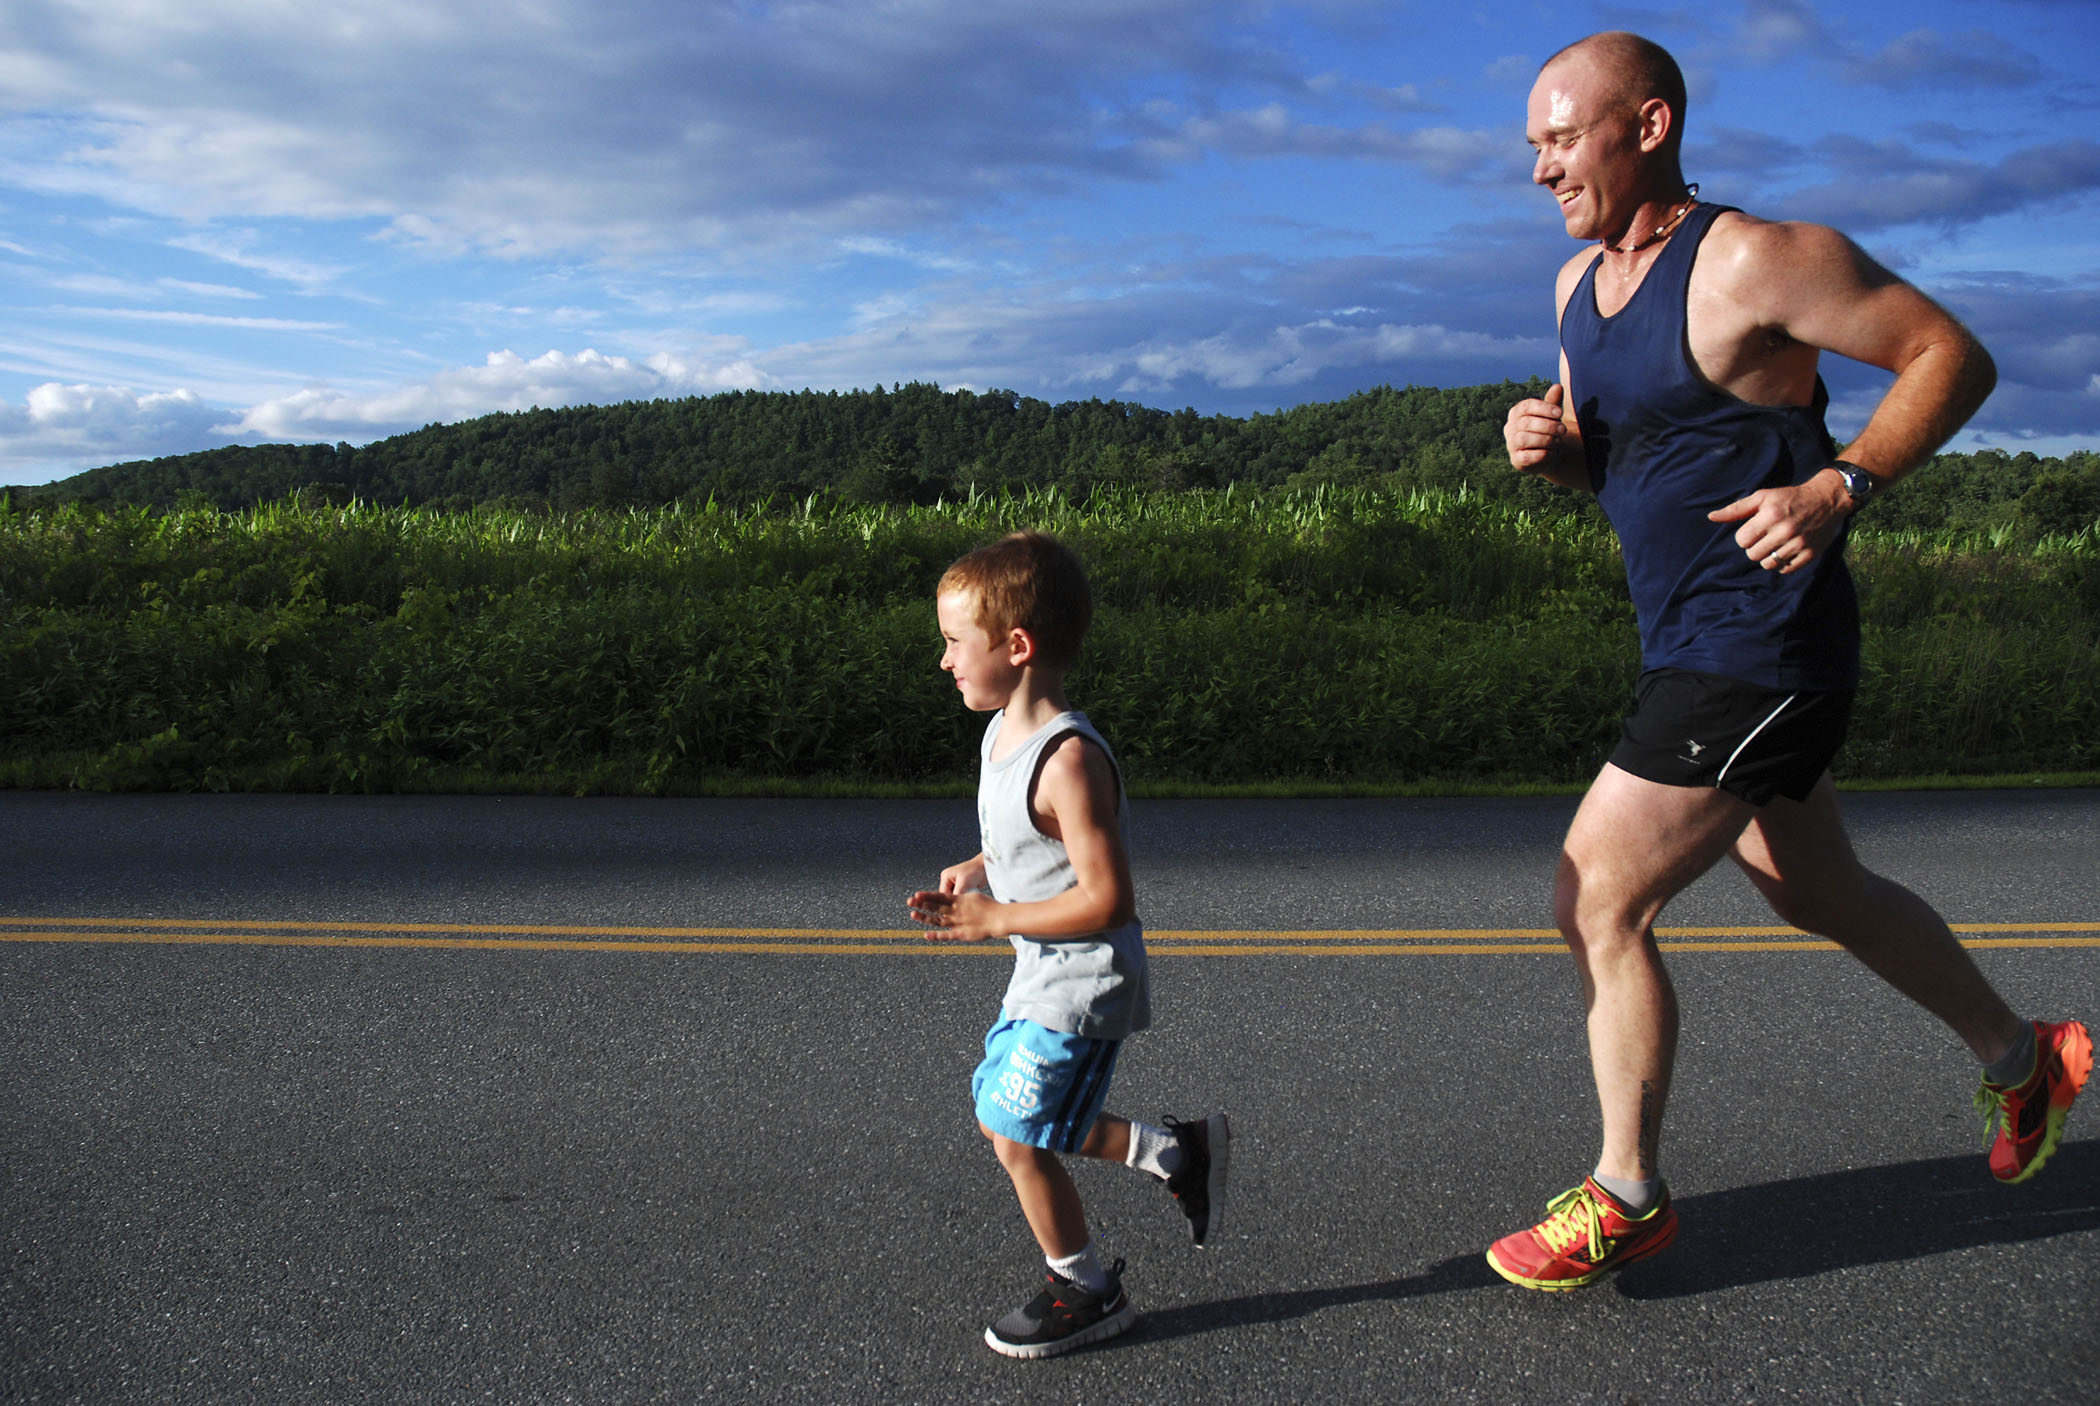 Peyton Joslyn, 5, of Keene, runs with his father, Clint Joslyn, at the Red Clover Rovers fun run in Brattleboro, Vt. on July 25, 2013.